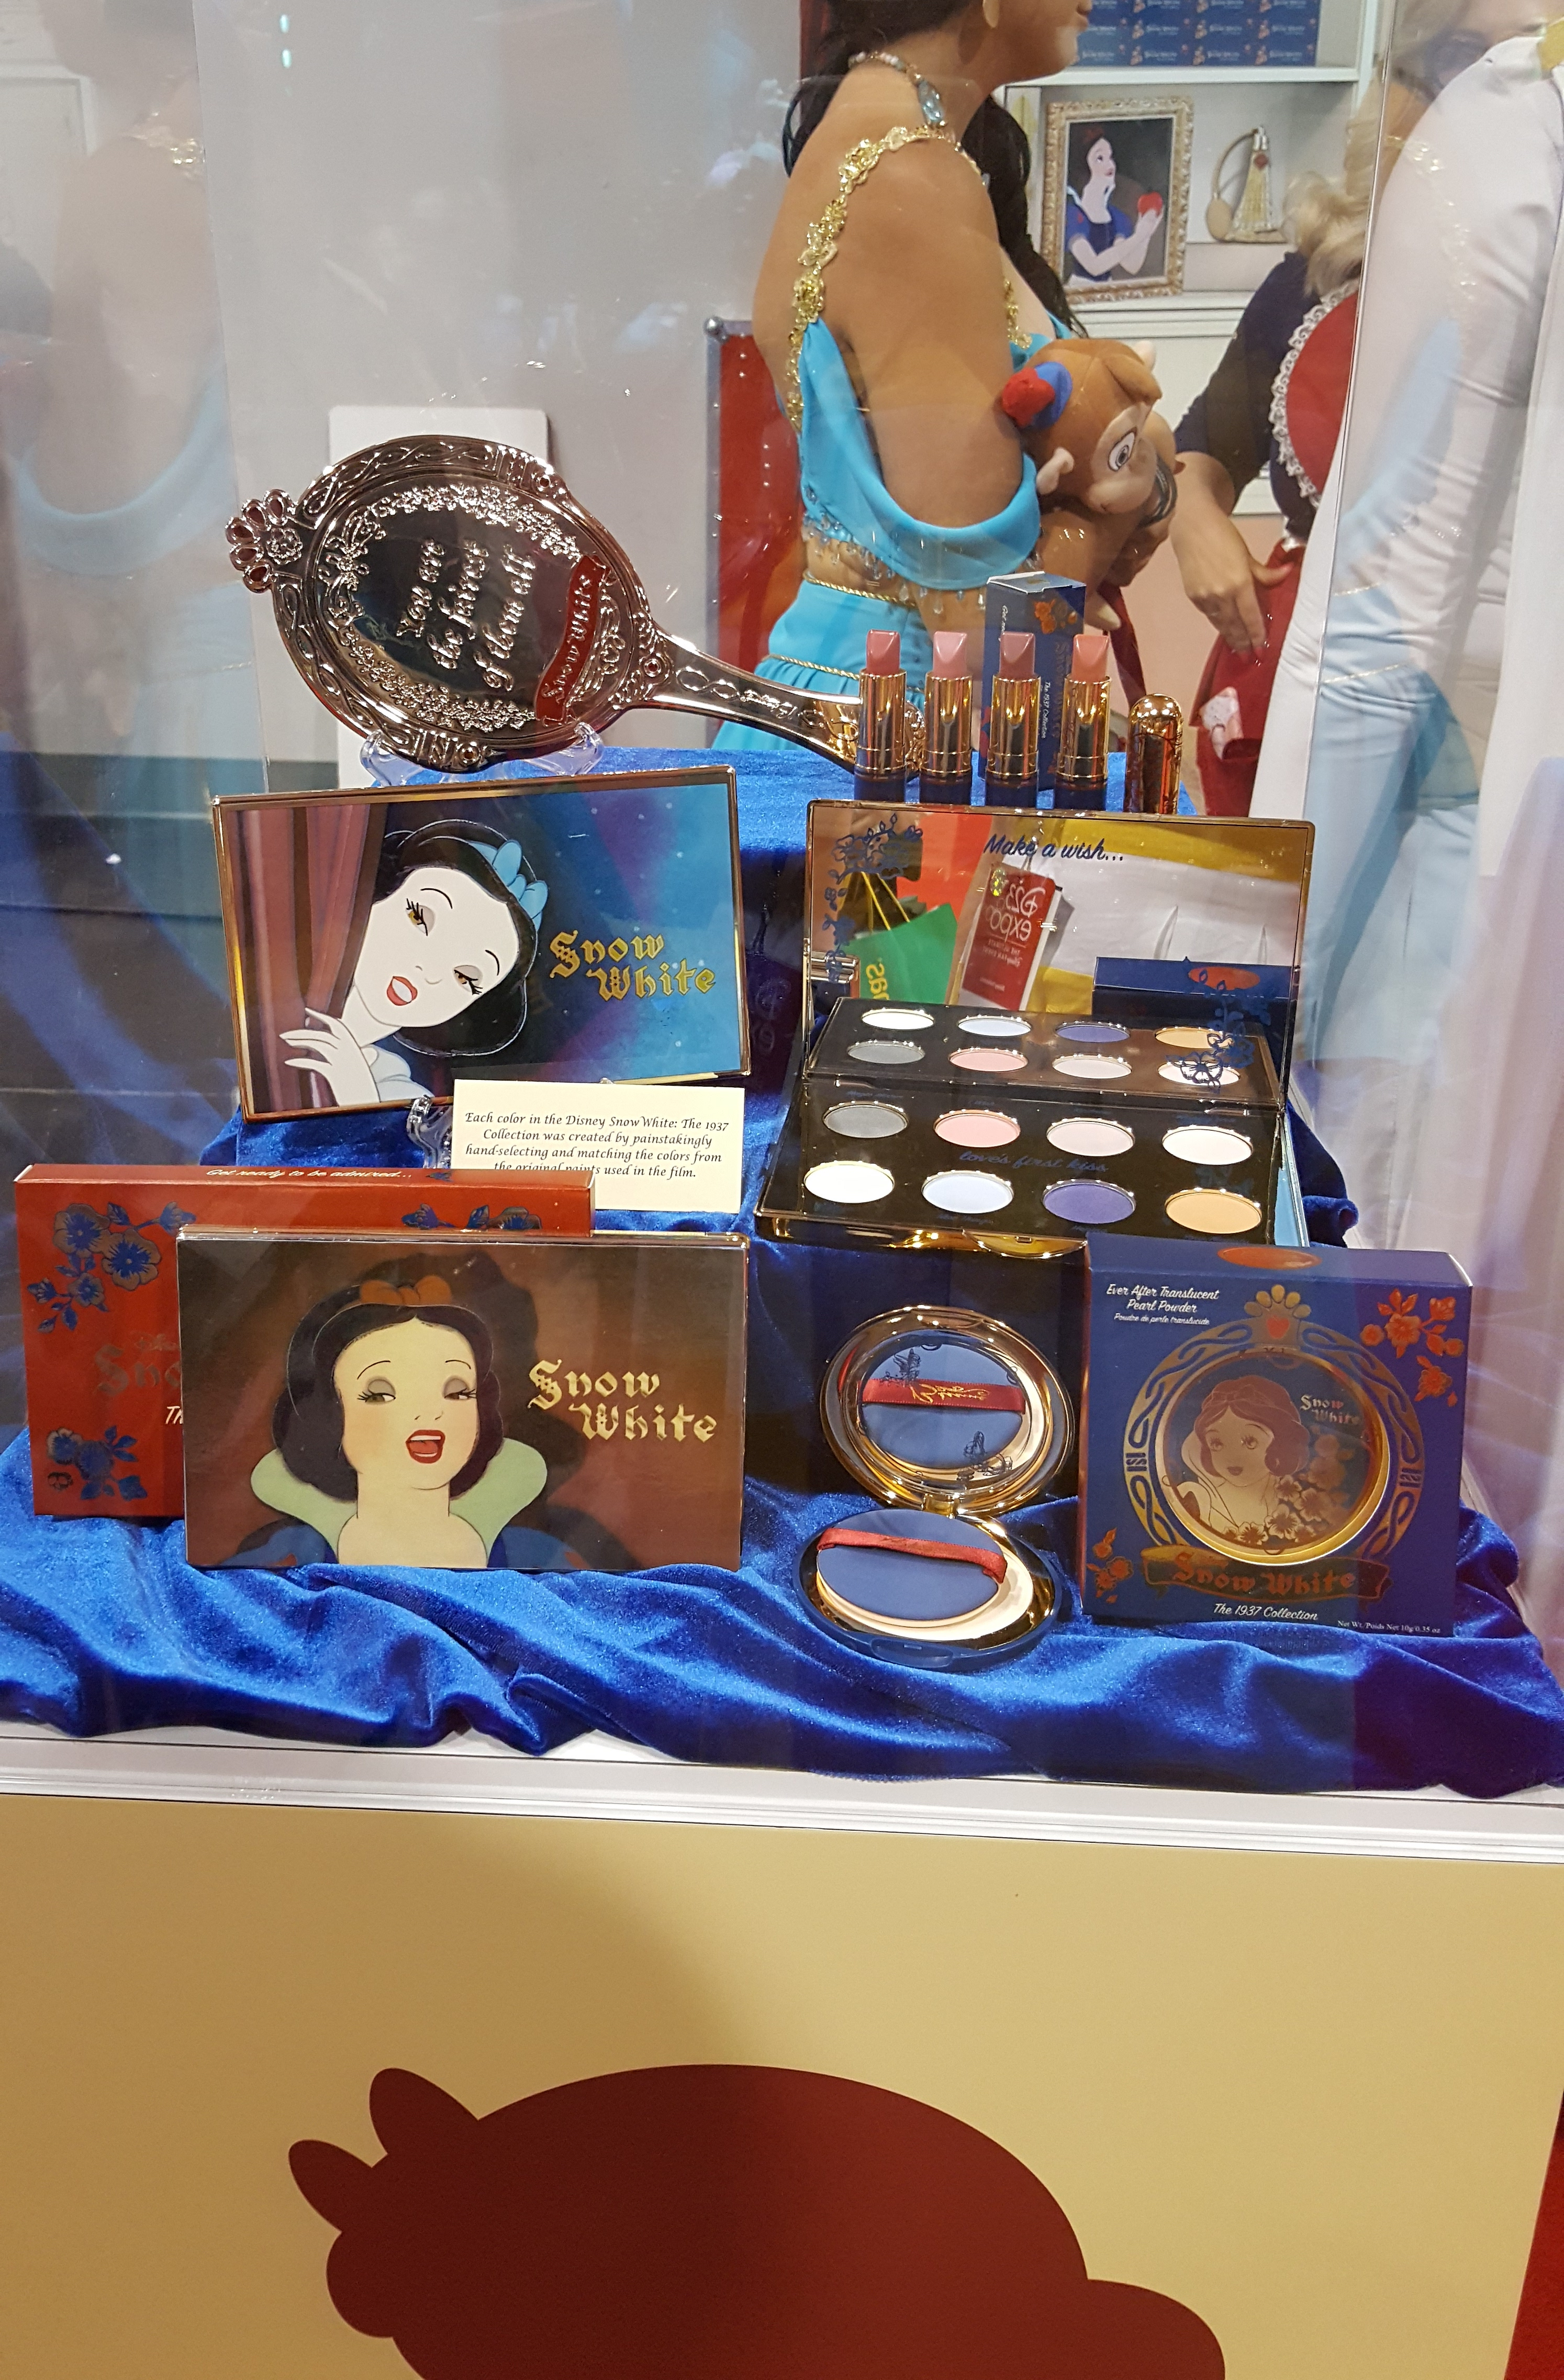 Besame Snow White Cosmetic Collection Launched At D23 Expo